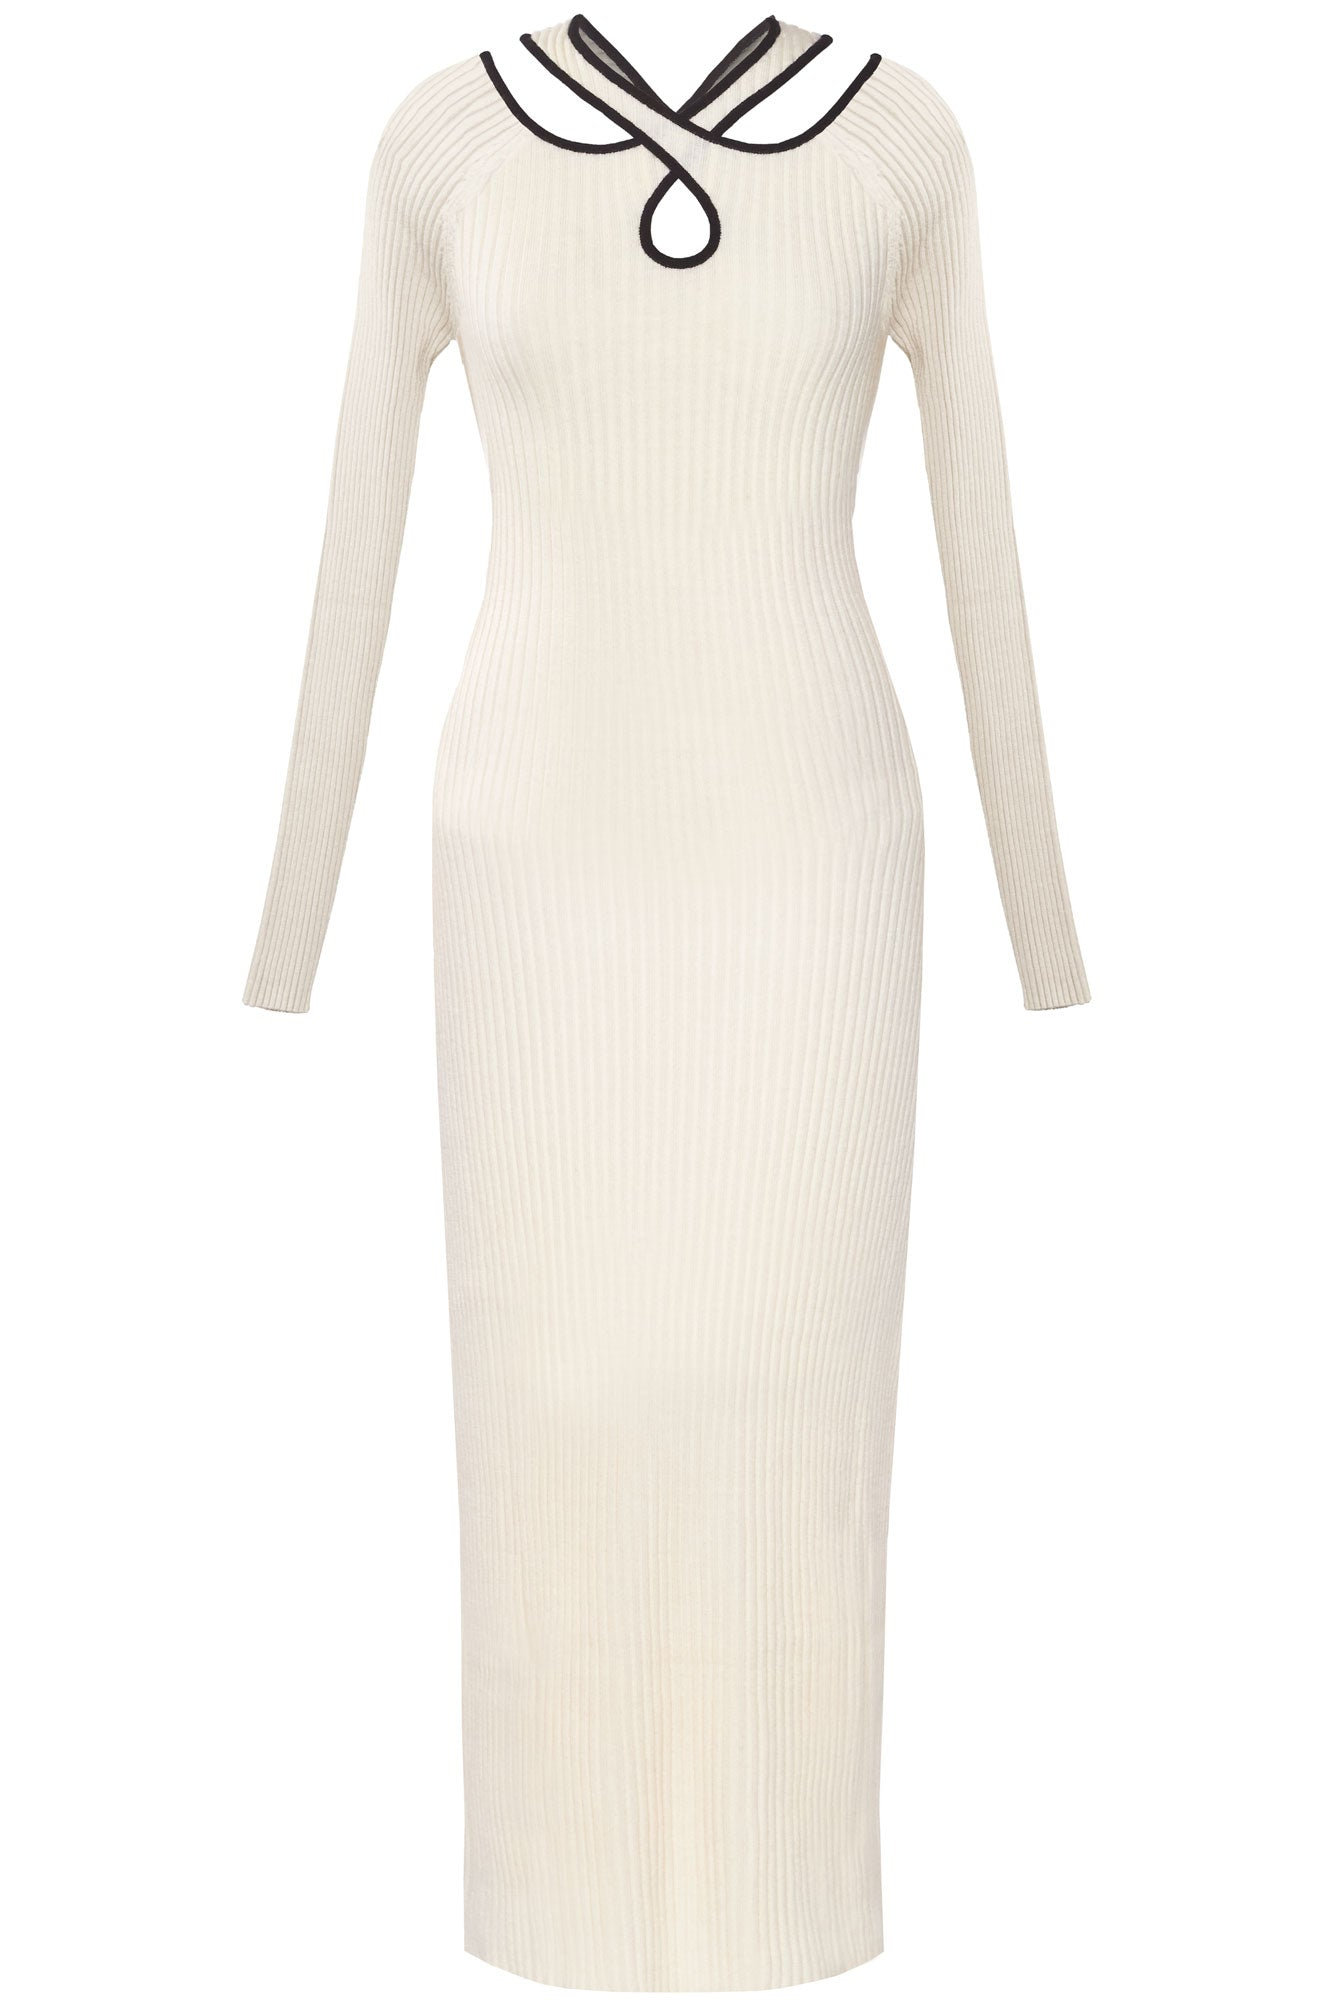 Cross Over Ribbed Knit Dress - Ivory